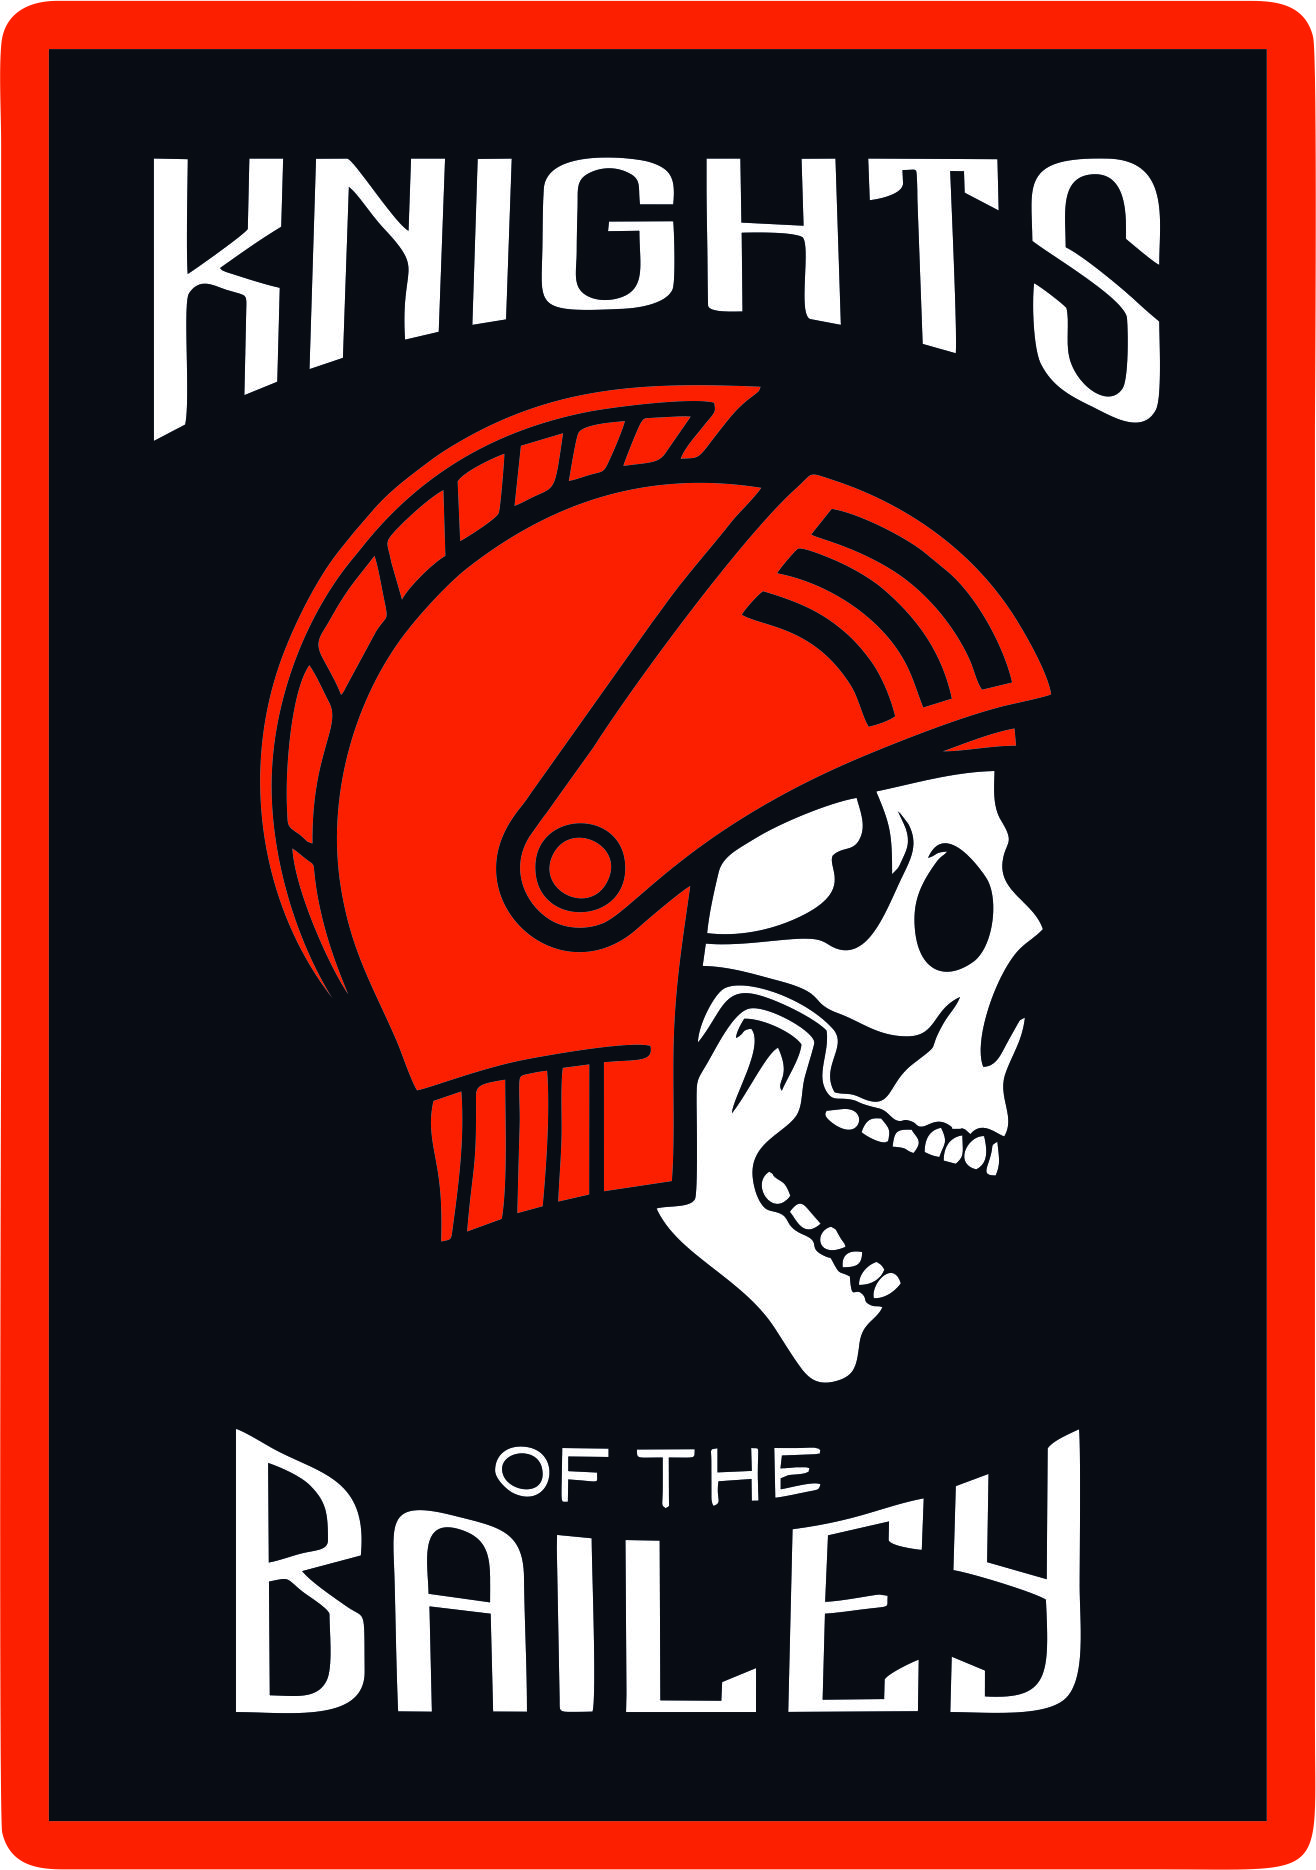 Knights of the Bailey